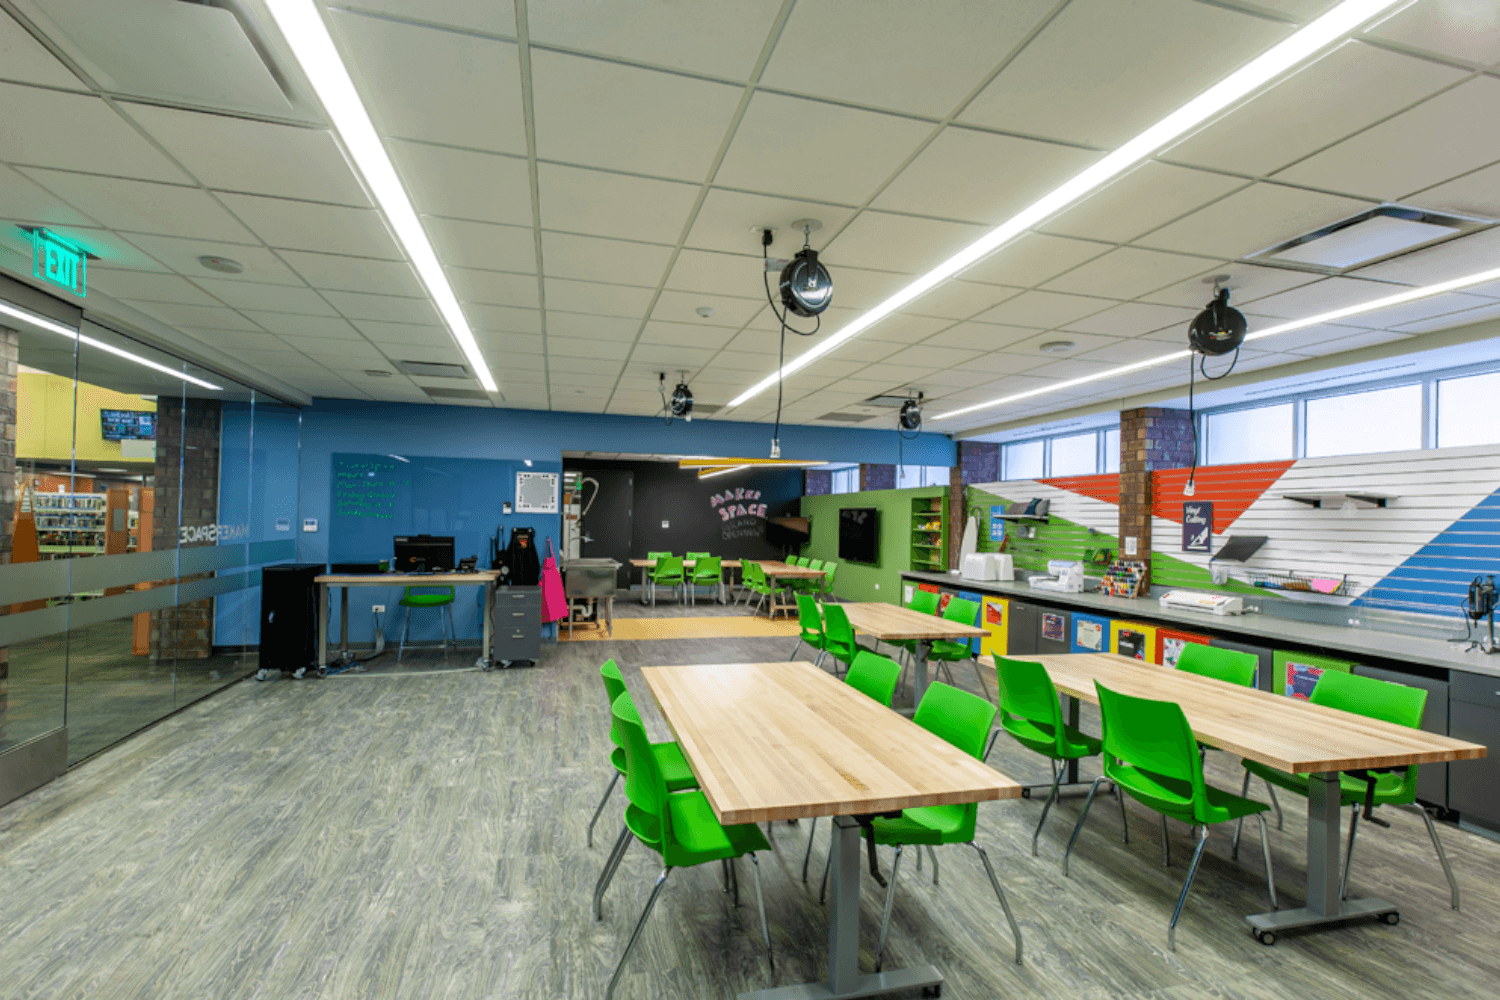 Deerfield Public Library Make Space Renovation Project tables